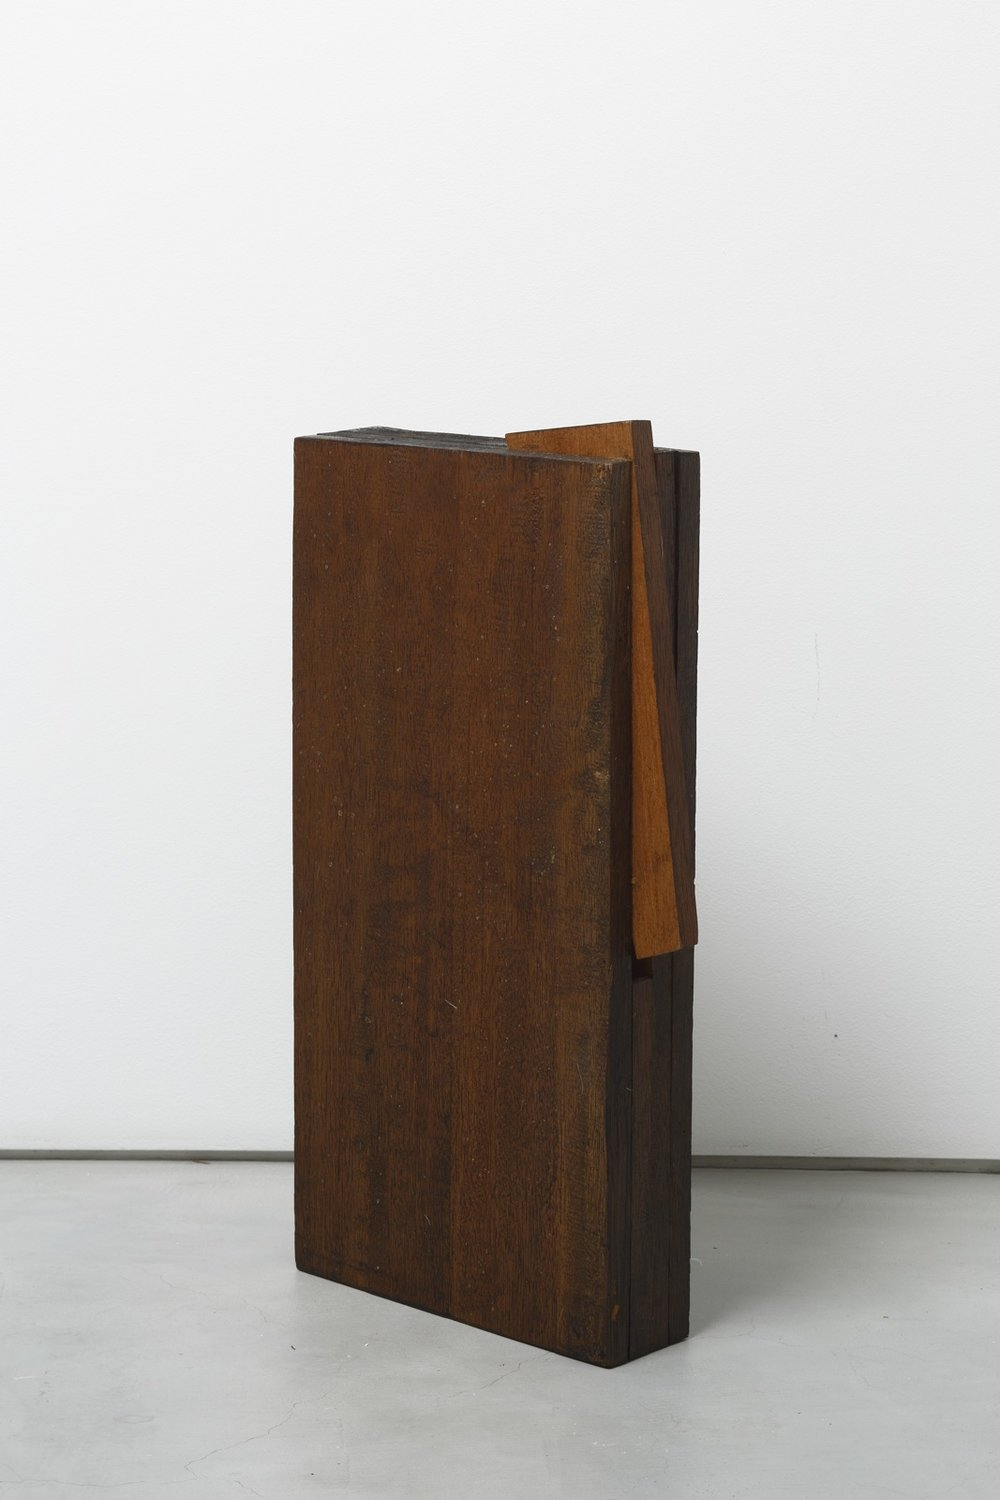 Kishio Suga  Detached Space on the Edge,  1980 辺の離空 ( Hen no Rikū ) Wood, varnish19 3/4 x 10 3/4 x 2 3/4 inches 50.2 x 27 x 7 centimeters